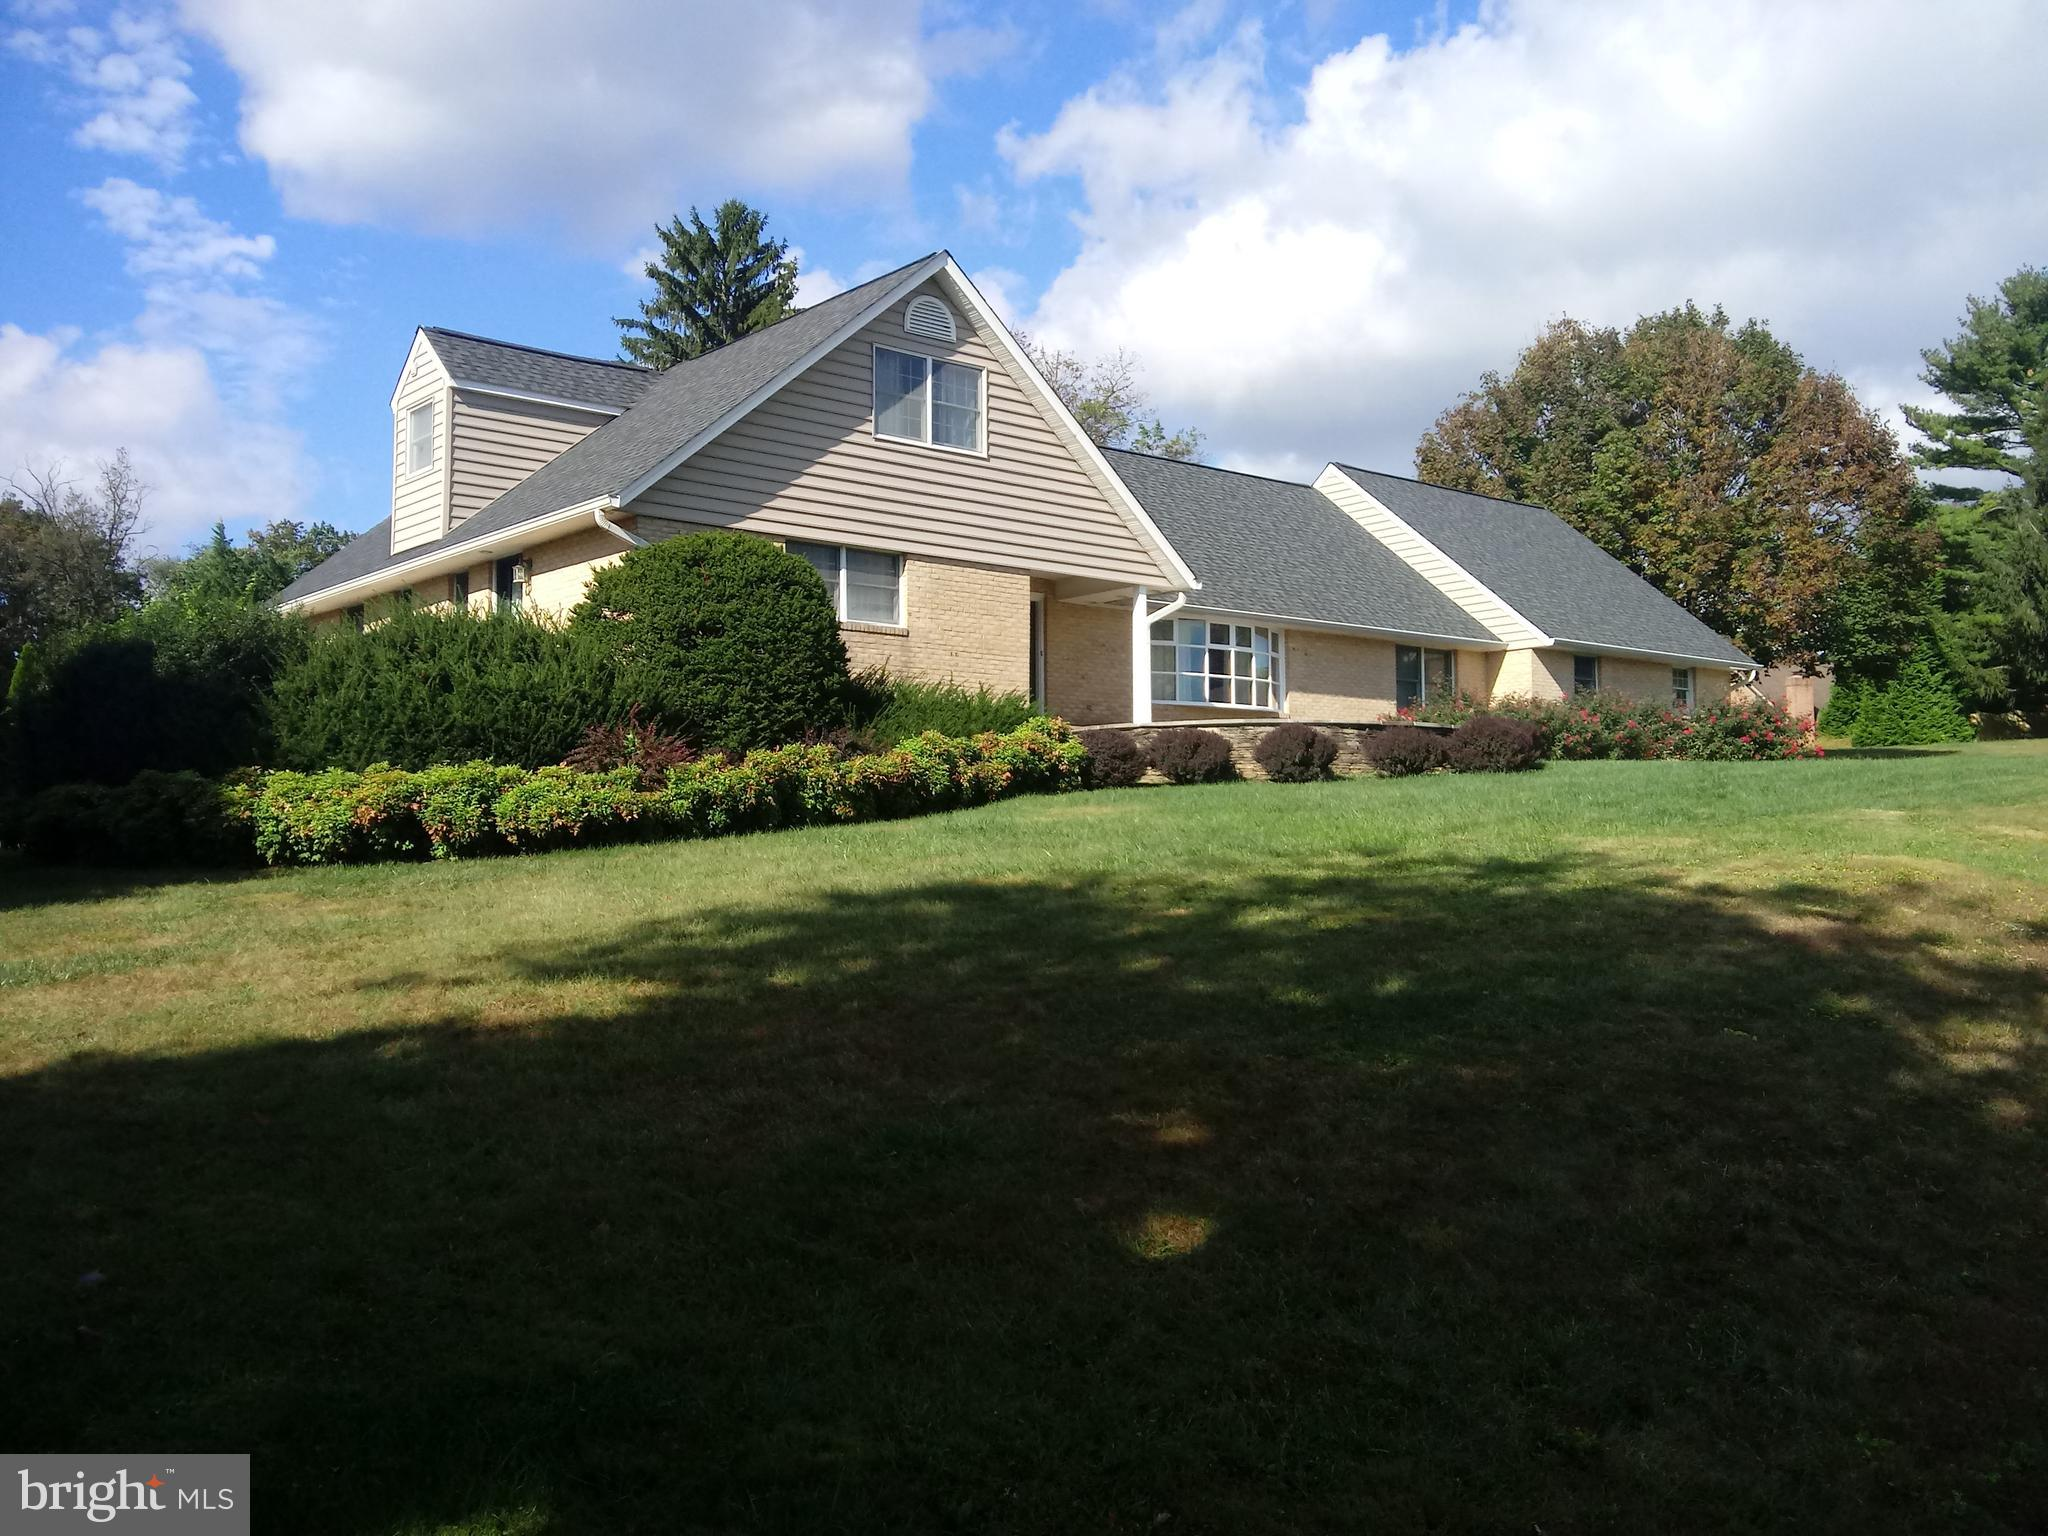 6914 SUMMERSWOOD DRIVE, FREDERICK, MD 21702